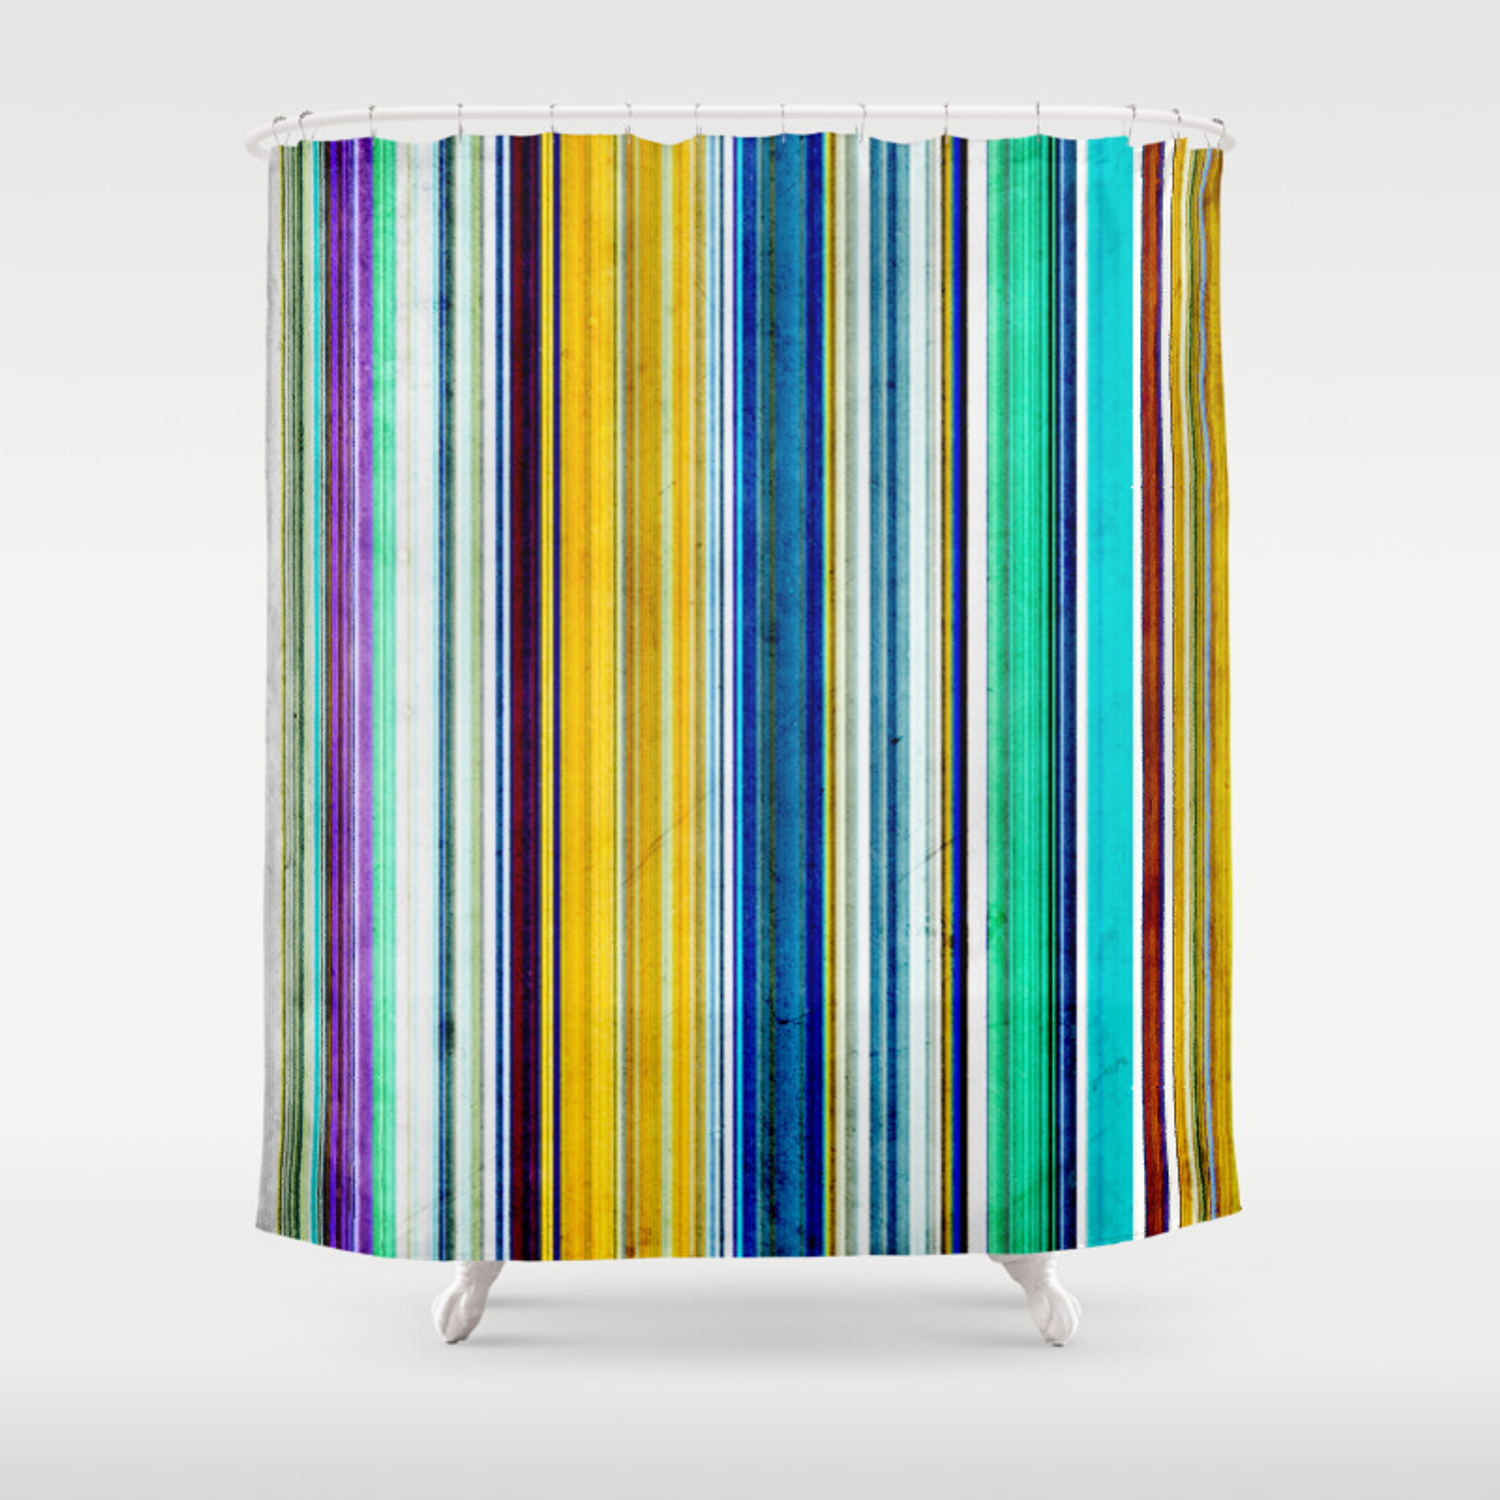 Colorful Stripes With Texture Shower Curtain